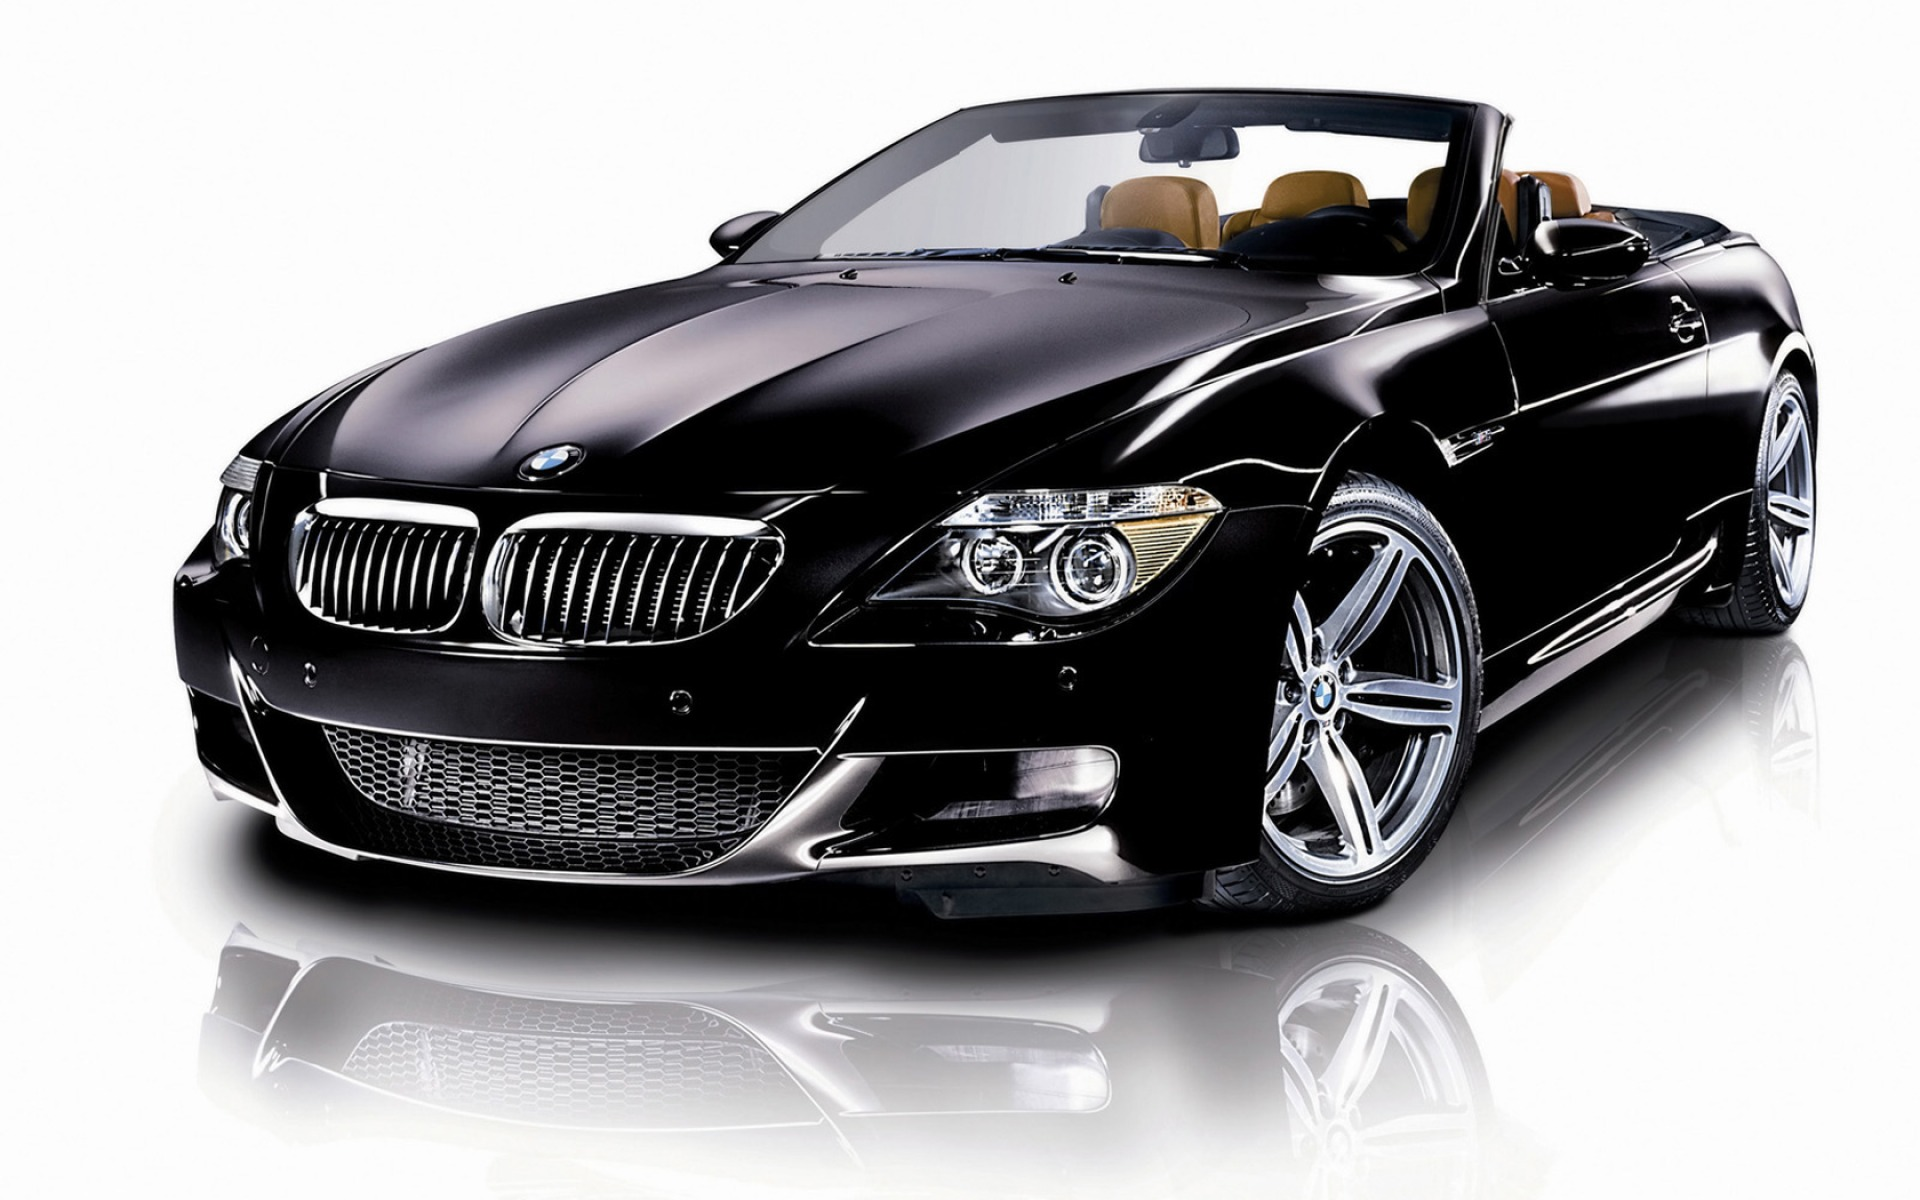 Ultrablogus  Mesmerizing Bmw Car Wallpaper Wallpapers For Free Download About   With Engaging Bmw M Convertible Wallpaper Bmw Cars With Astonishing Fd Rx Interior Also Jk Interior Mods In Addition Em Interior And Car Interior Vinyl Fabric As Well As Bmw Interior Trim Paint Additionally Interior Space Shuttle From Allfreedownloadcom With Ultrablogus  Engaging Bmw Car Wallpaper Wallpapers For Free Download About   With Astonishing Bmw M Convertible Wallpaper Bmw Cars And Mesmerizing Fd Rx Interior Also Jk Interior Mods In Addition Em Interior From Allfreedownloadcom